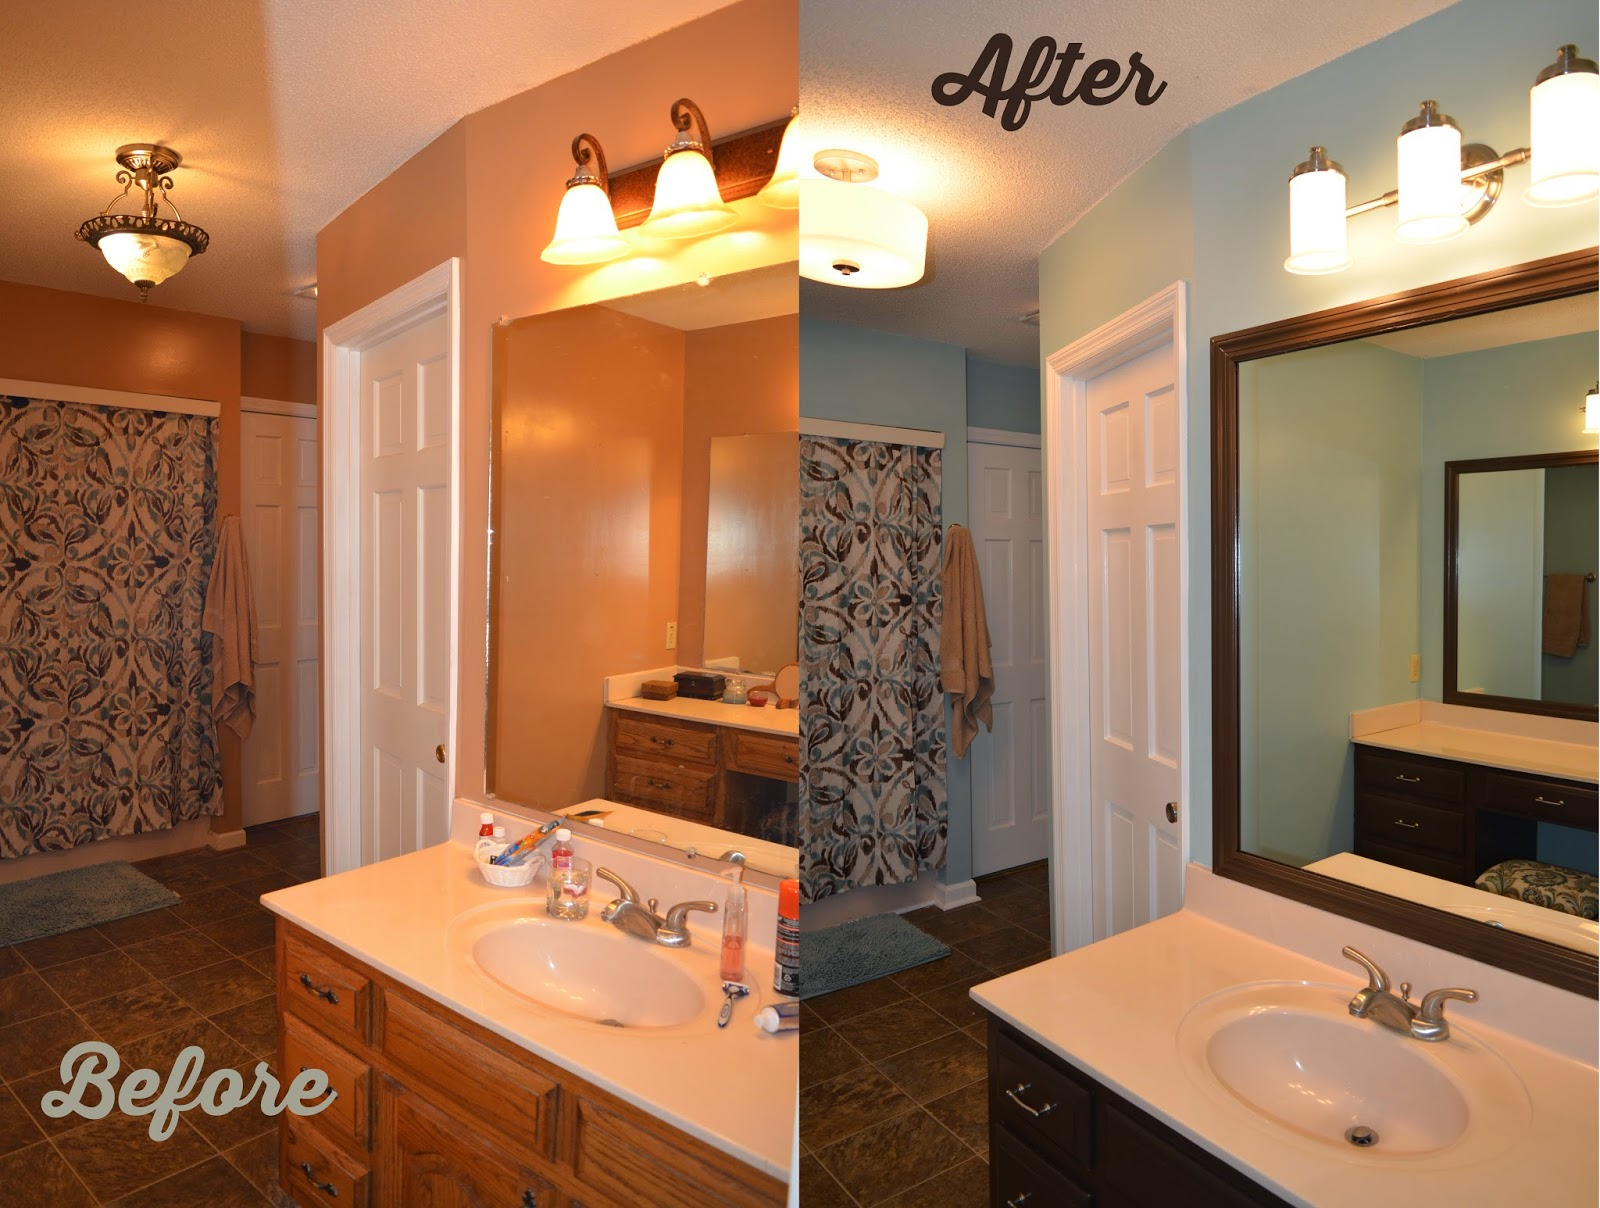 Framing A Bathroom Mirror Before And After from nerdy to thirty: bathroom renovation: mirror frame